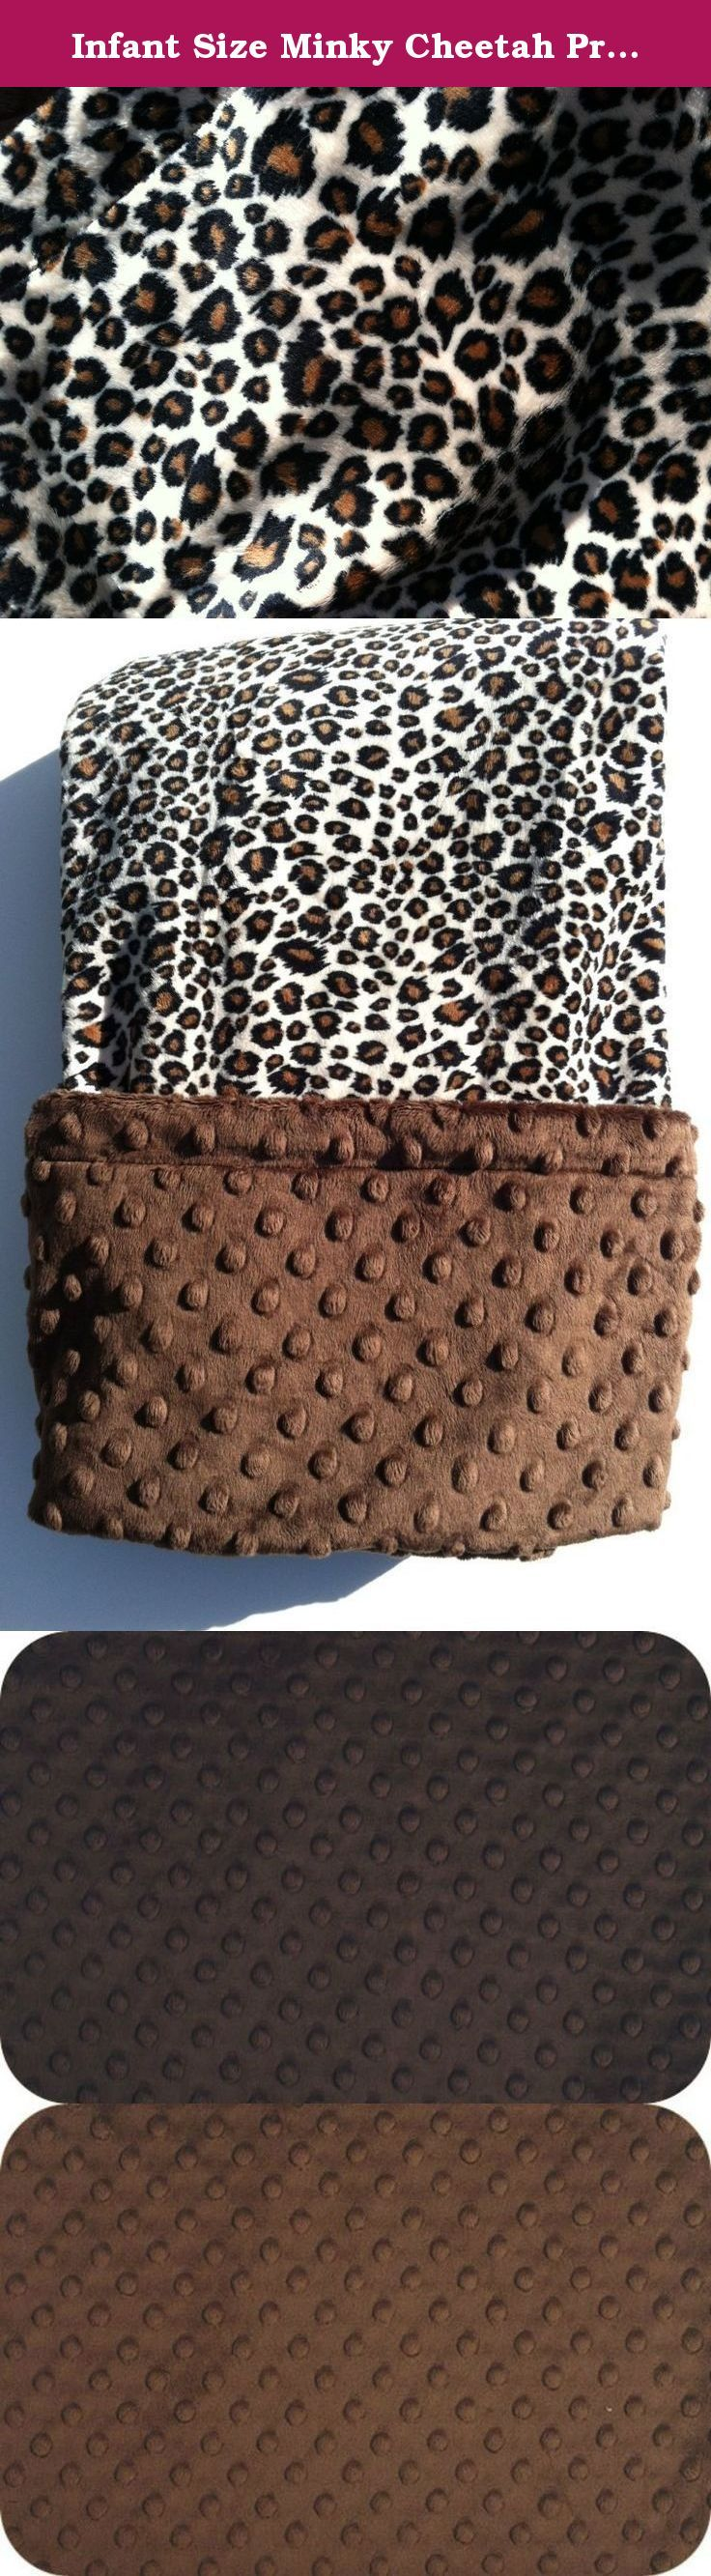 Infant Size Minky Cheetah Print Blanket, Animal Print Blanket .Car Seat or Stroller Blanket. Cheetah Animal Print Minky Blanket with your choice of Brown or Chocolate Minky Dot backing, This is an extremely soft blanket for Cuddling all year round. Unisex blanket will be sure to please everyone ! Machine Wash Cold Tumble Dry Cool Do Not Iron or use Fabric Softeners, No Bleach.